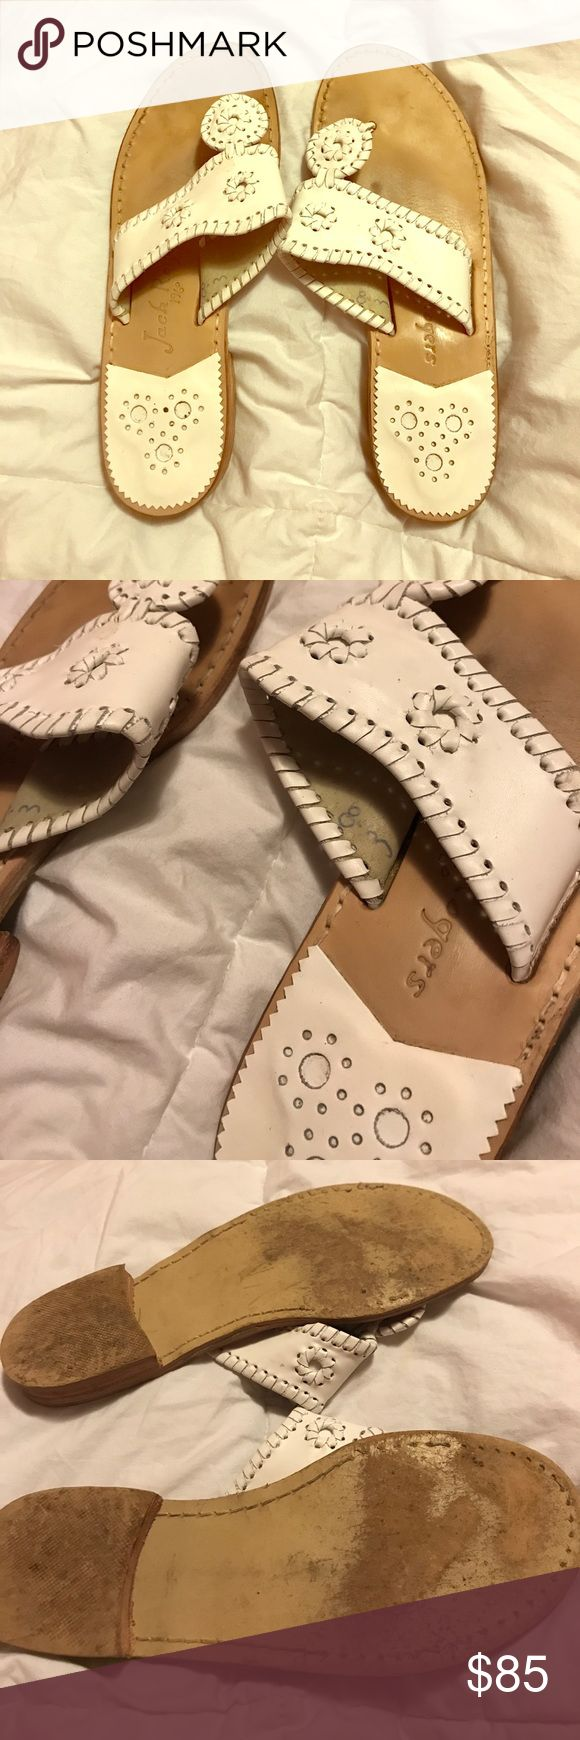 White Jack Rogers Palm Beach Navajo Sandal Size 8 white Jack Rogers! Been worn less than 5 times Jack Rogers Shoes Sandals